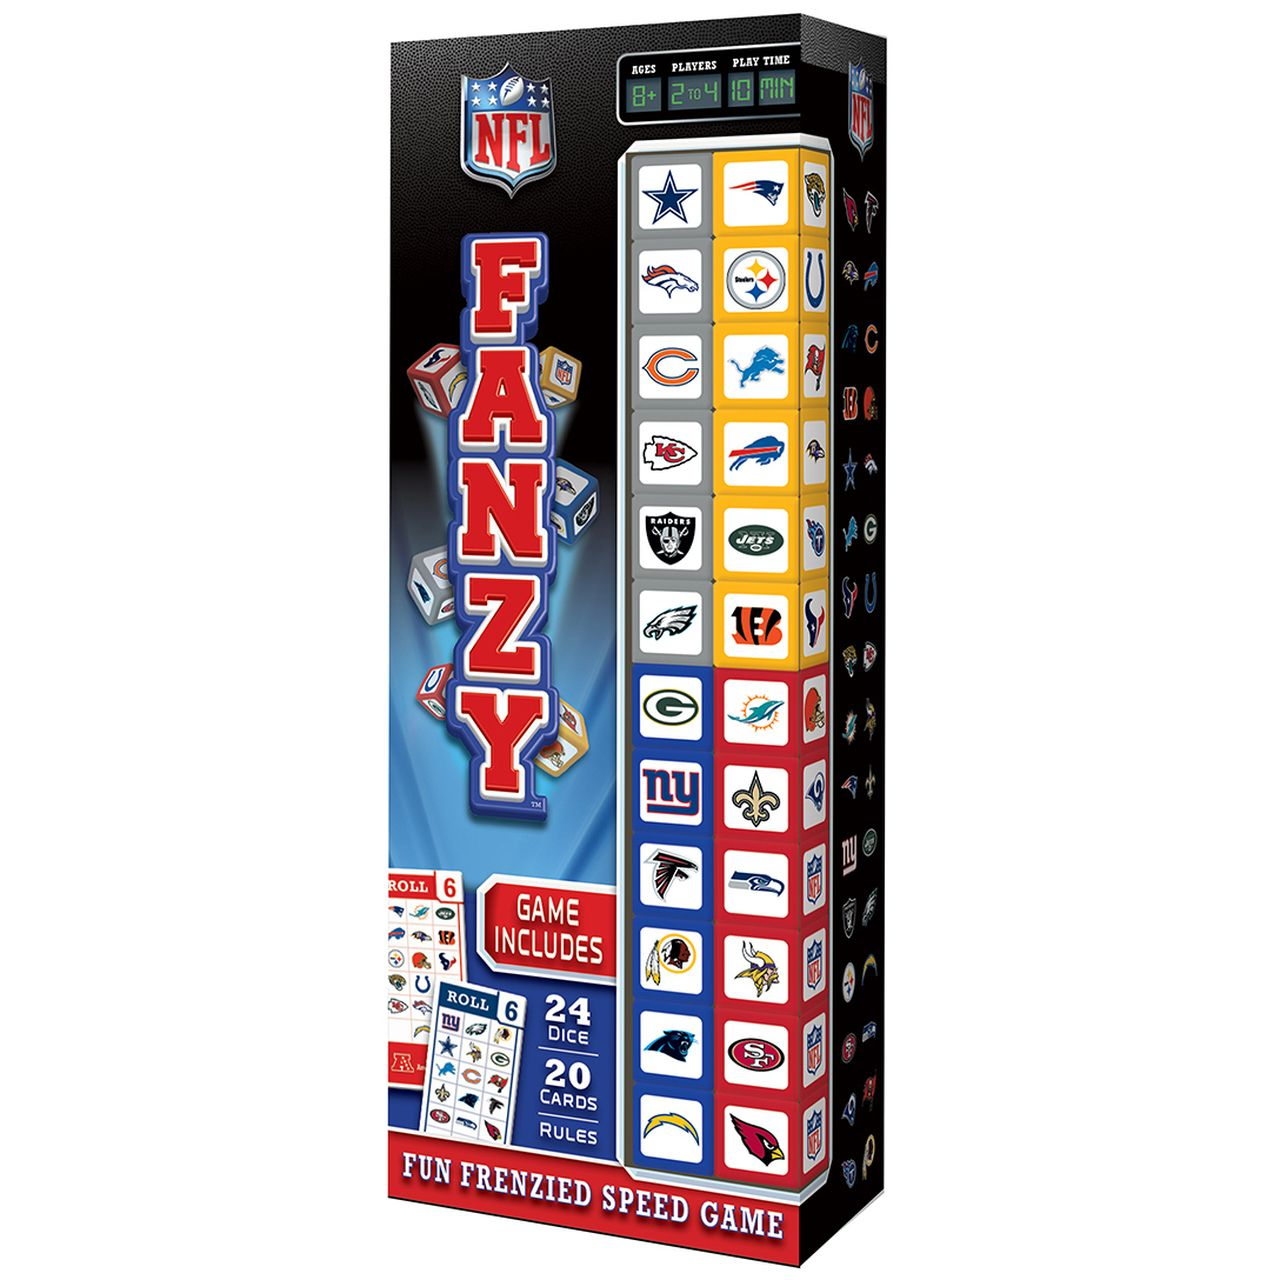 NFL Fanzy Speed Dice Game Dice games, Nfl, Games